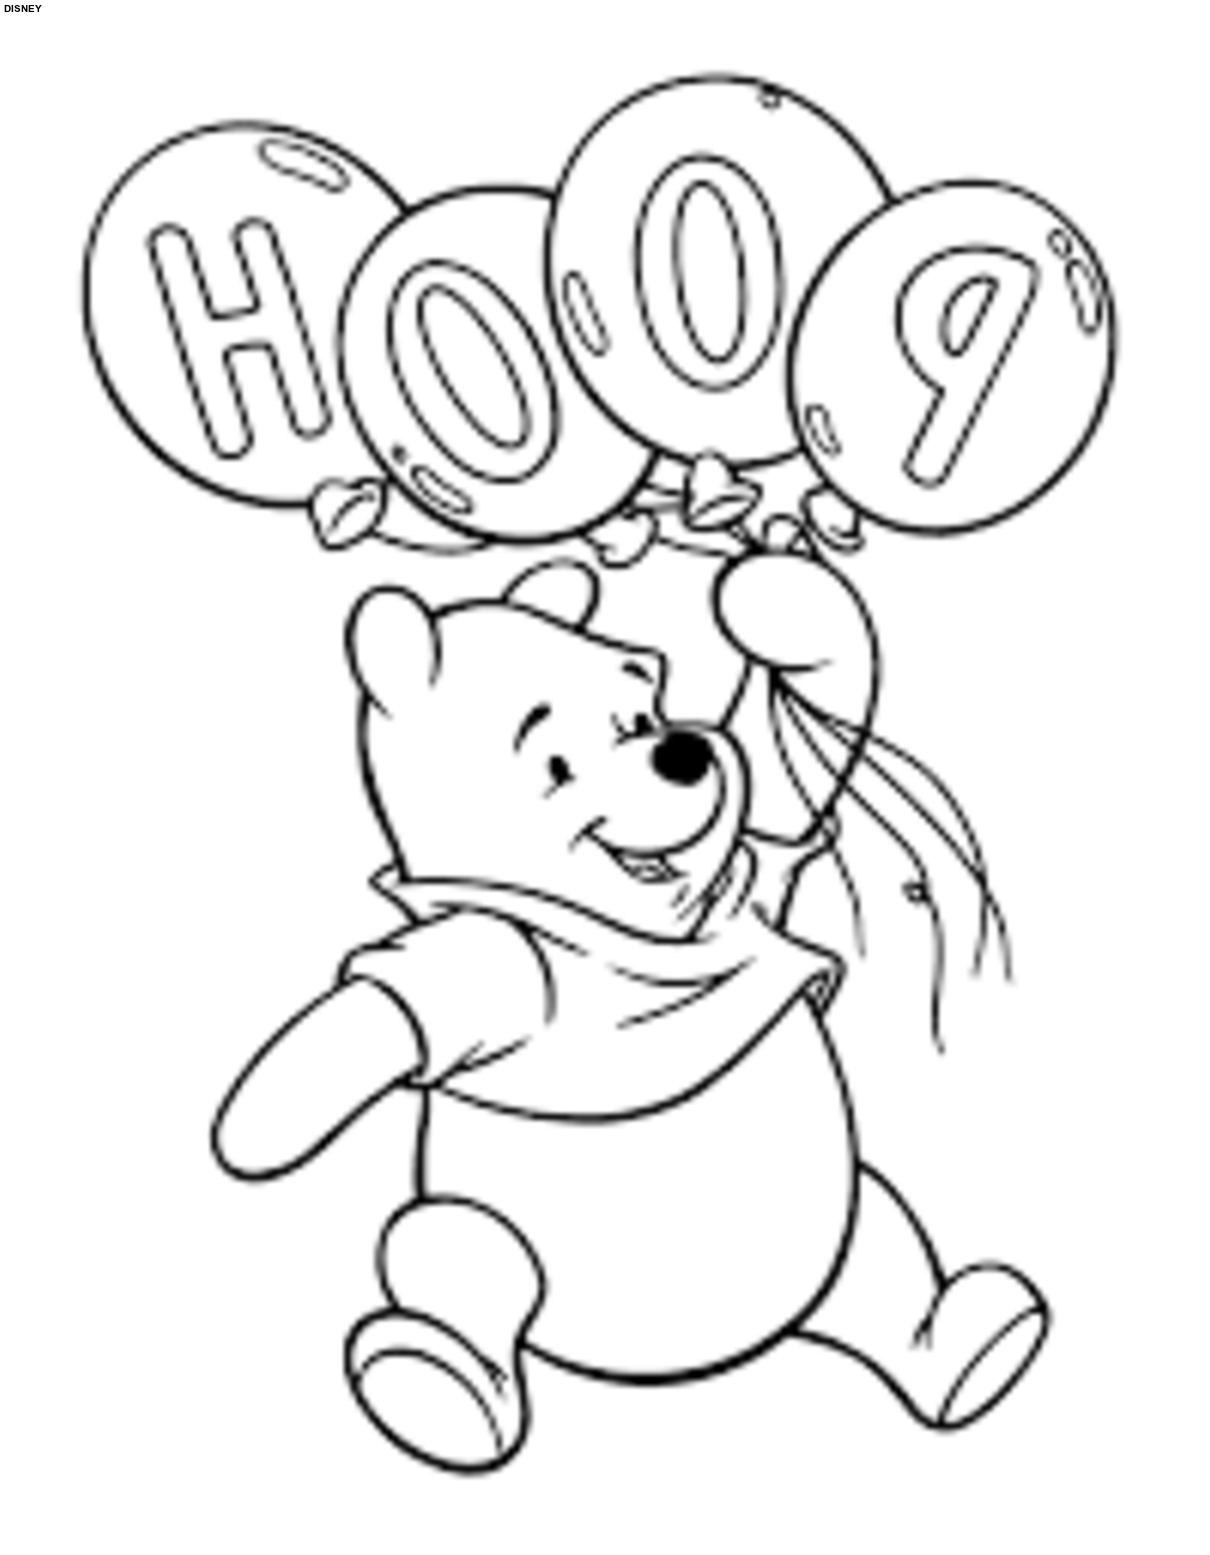 coloring printable cartoon characters looney tunes coloring pages download and print looney printable characters cartoon coloring